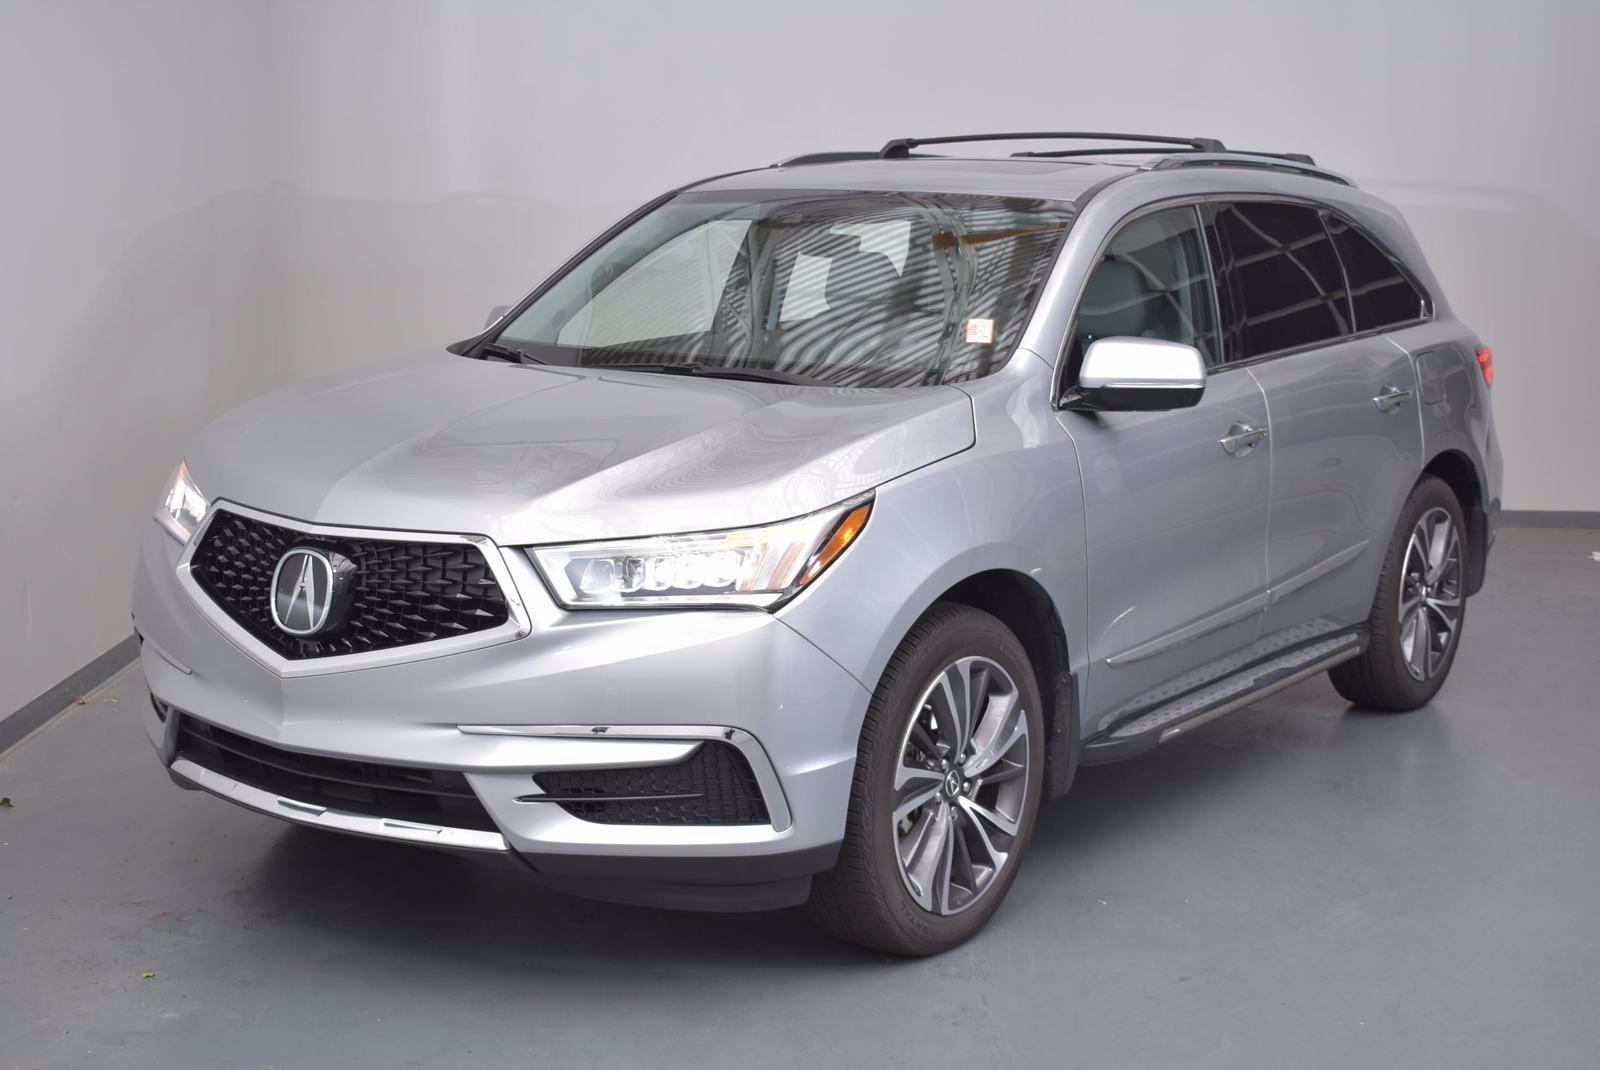 2020 Acura MDX Vehicle Photo in Cary, NC 27511